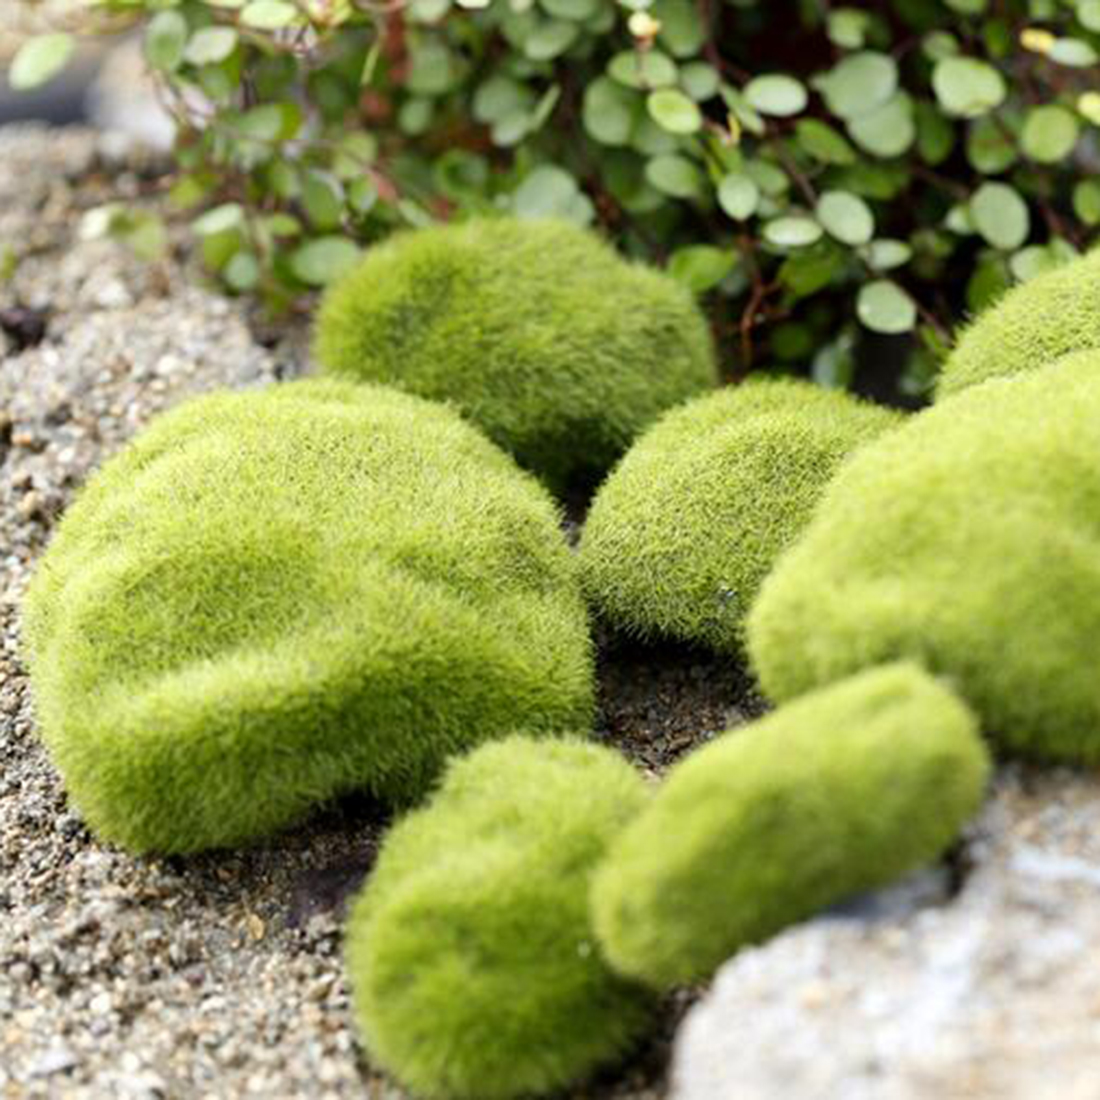 Decorative garden ornaments - Hot Selling Green Moss Stone Garden Ornaments For Bonsai Display Nature Moss Stone For Micro Landscape